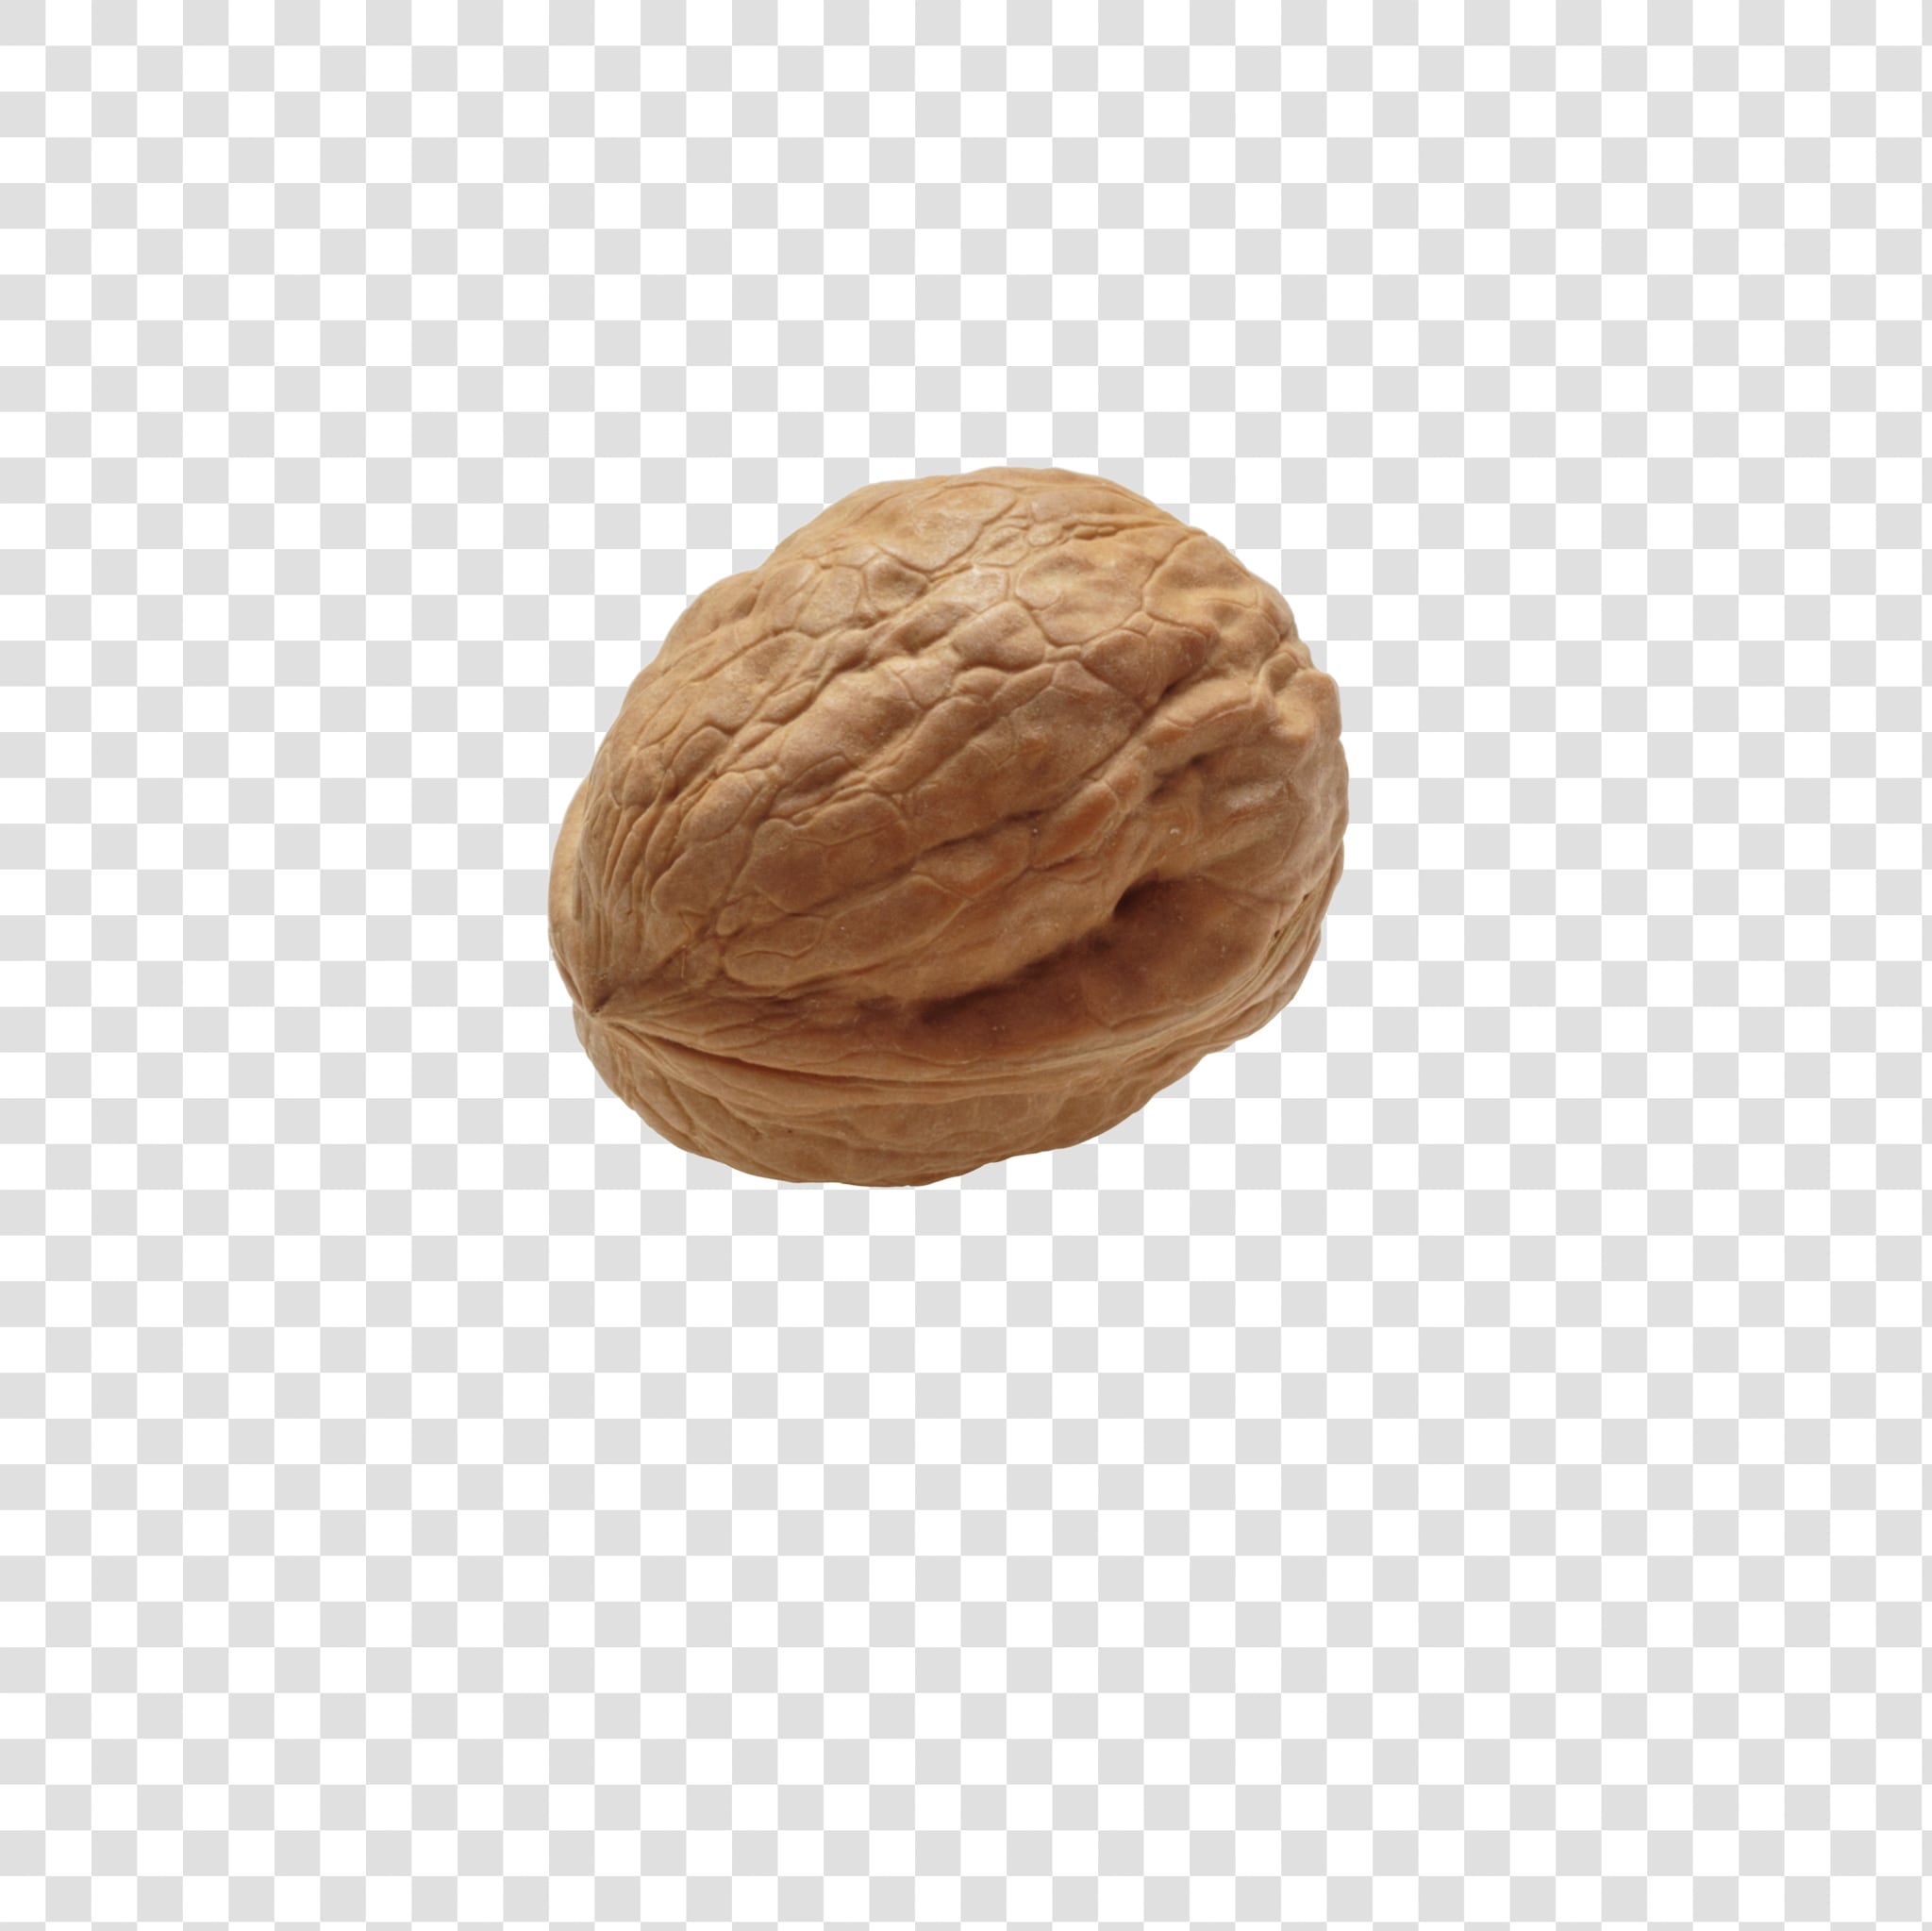 Walnut image asset with transparent background